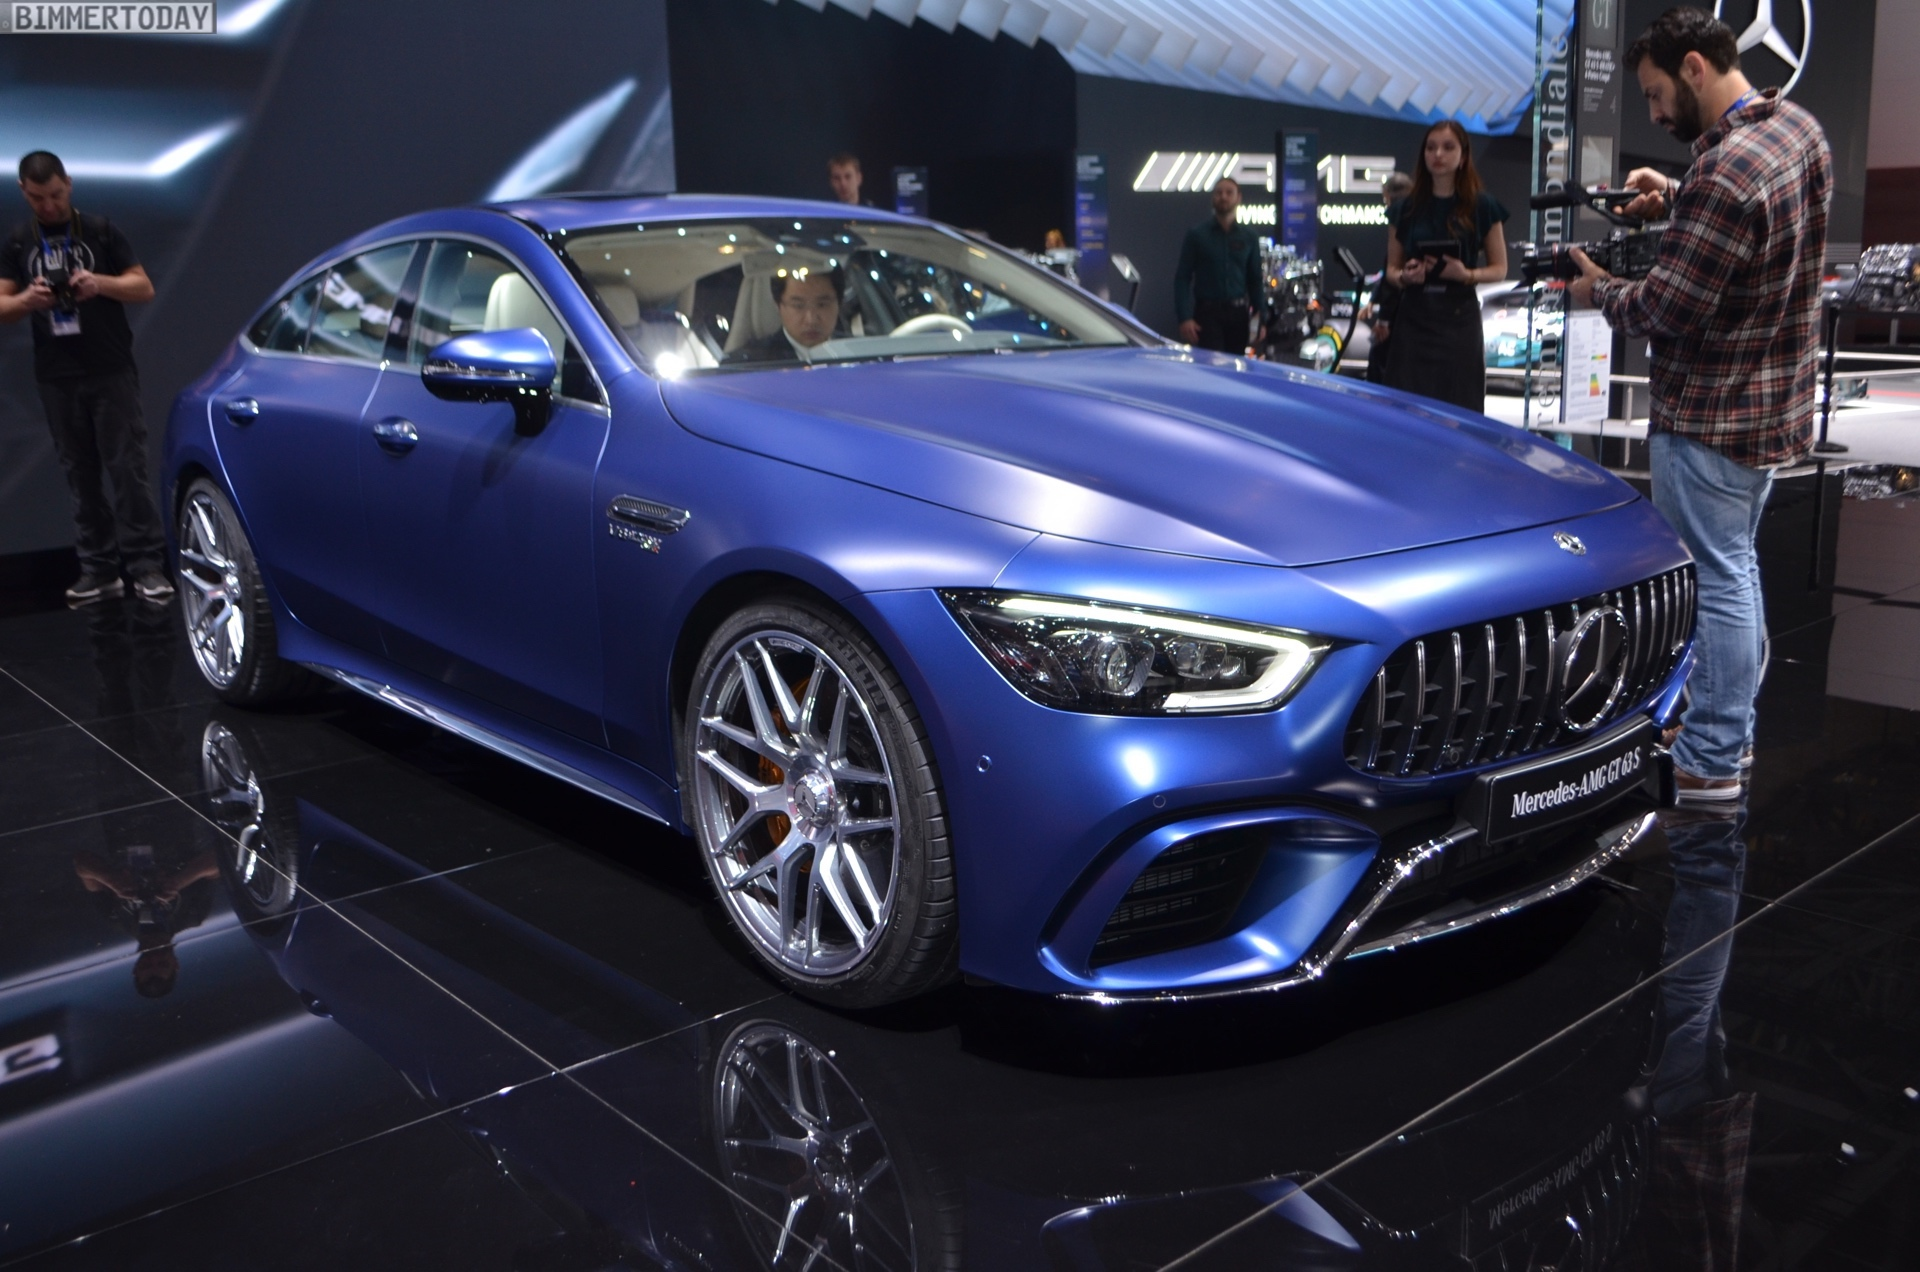 2018 Geneva Motor Show Live Photos Mercedes Amg Gt 4 Door